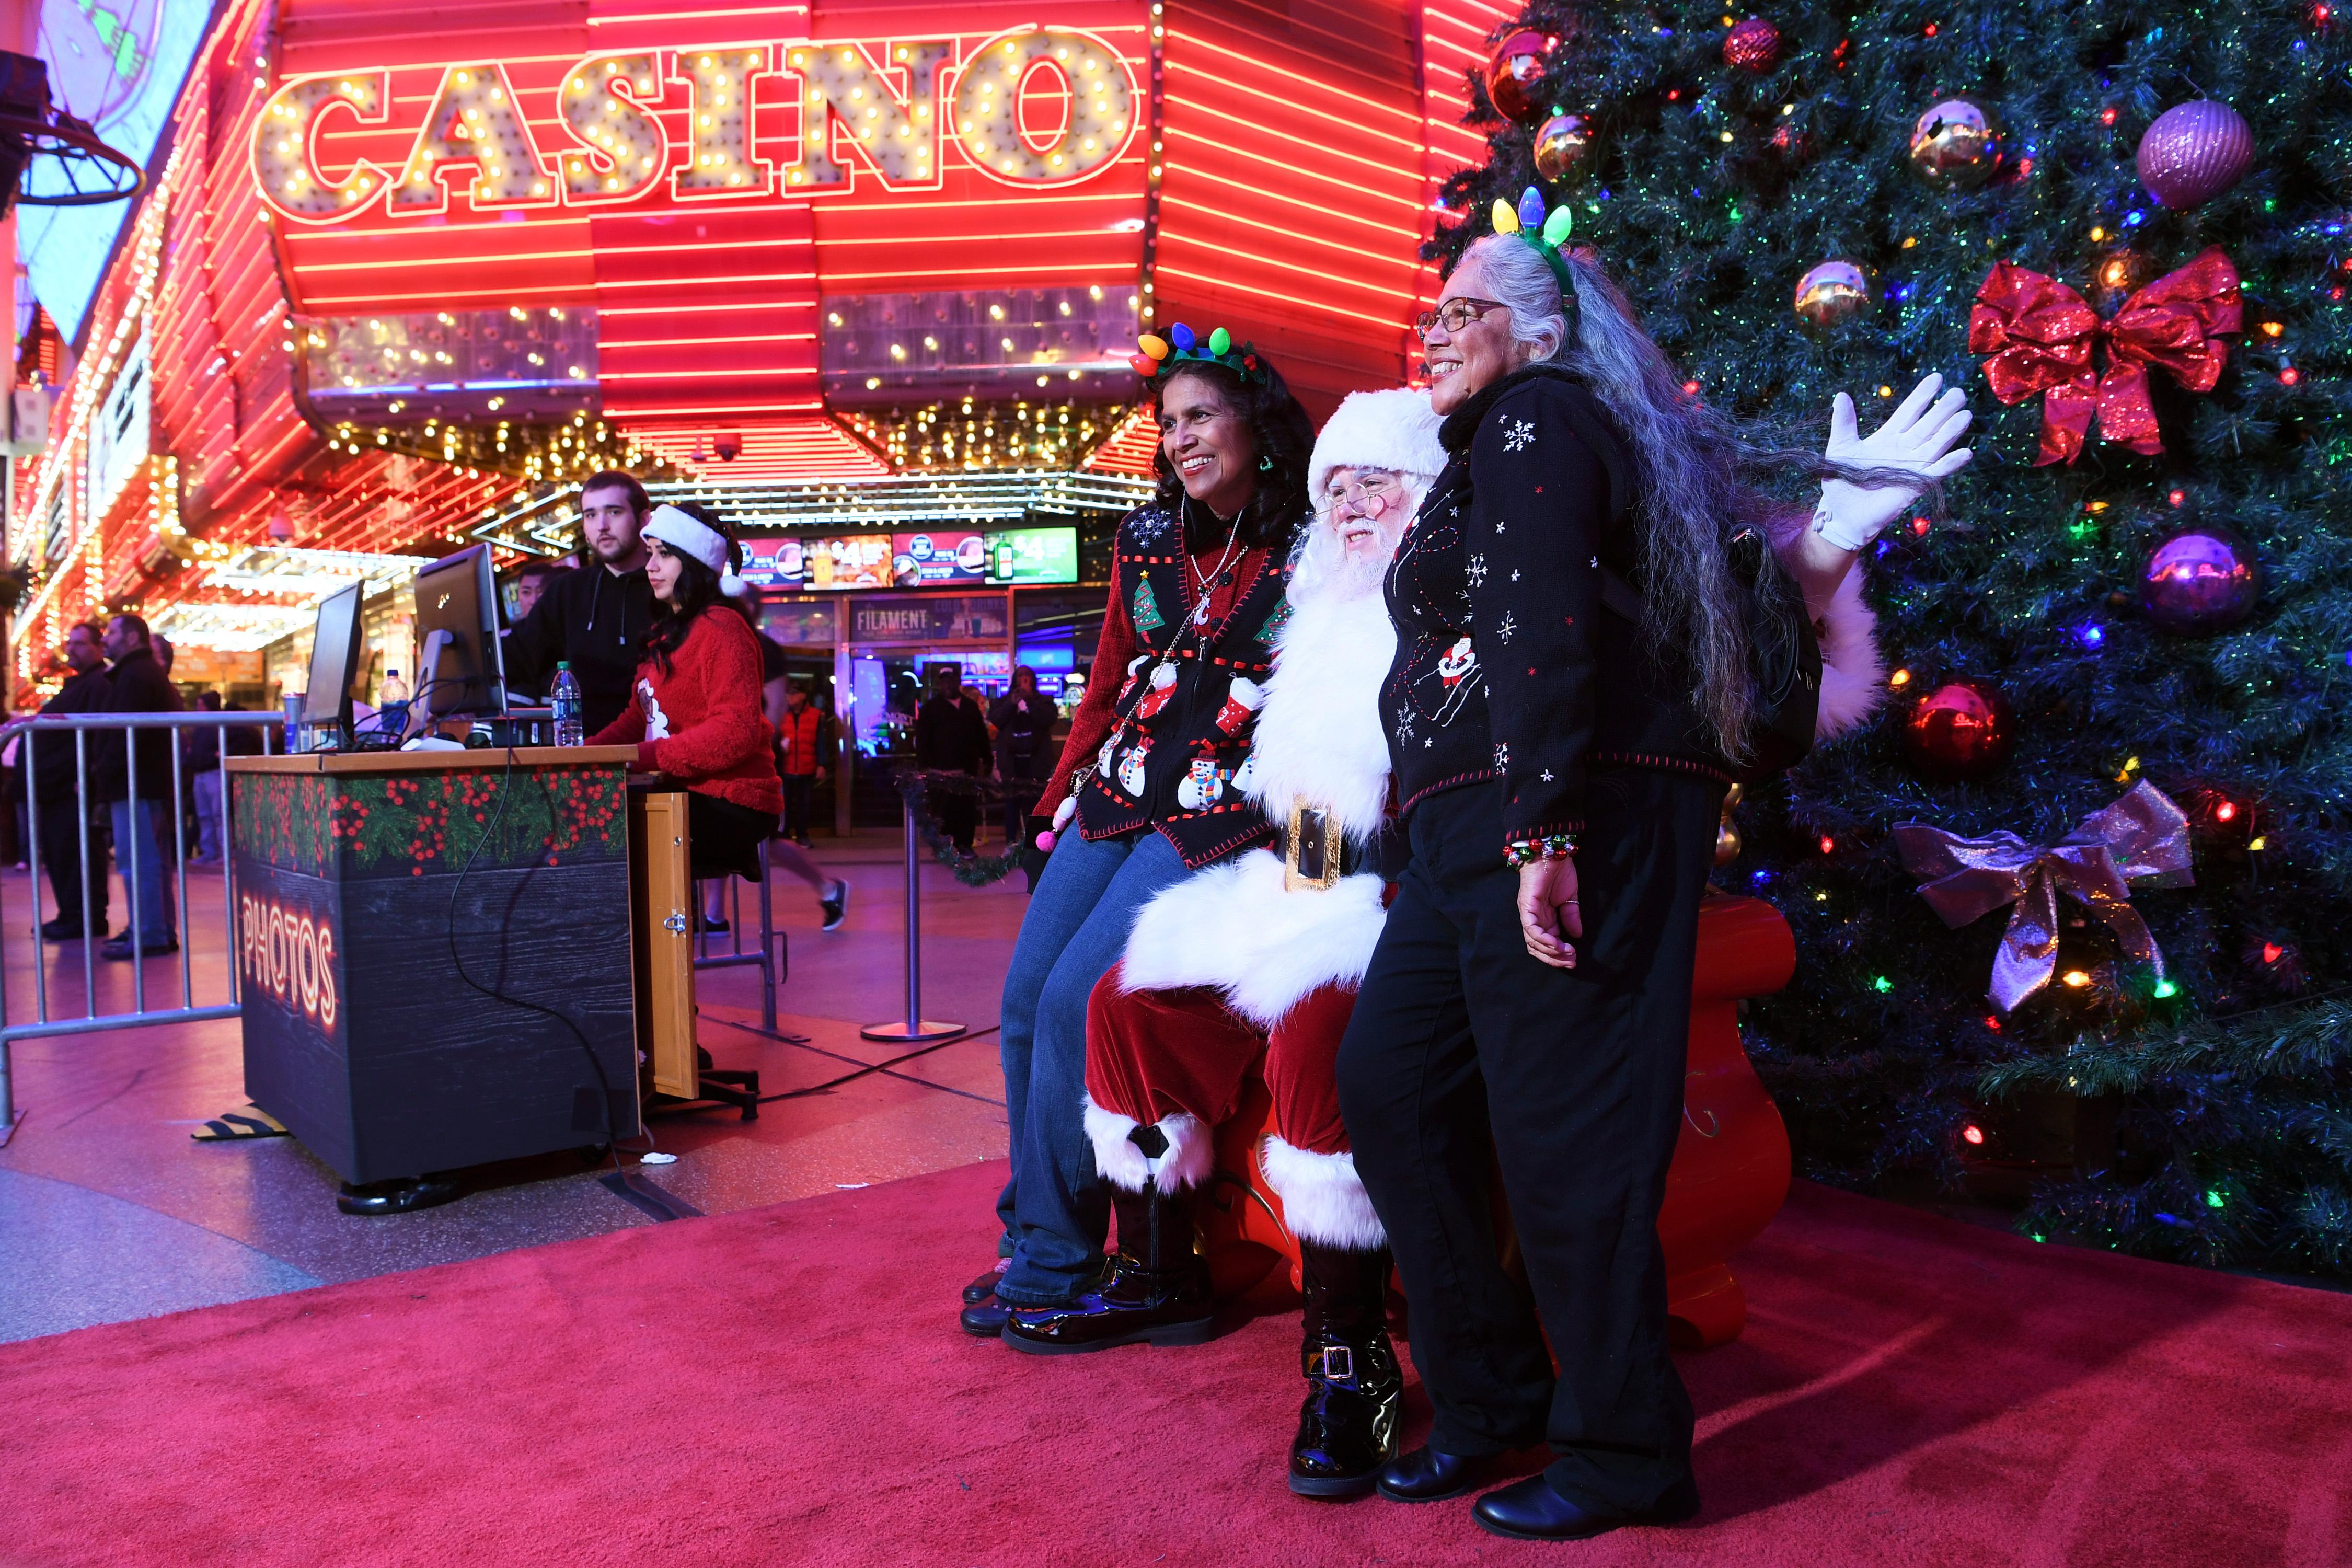 Armida Mejia, left, and Chachi Mejia have their photo taken with Santa during the annual lighting of a Christmas tree at the Fremont Street Experience Tuesday, December 4, 2018. CREDIT: Sam Morris/Las Vegas News Bureau